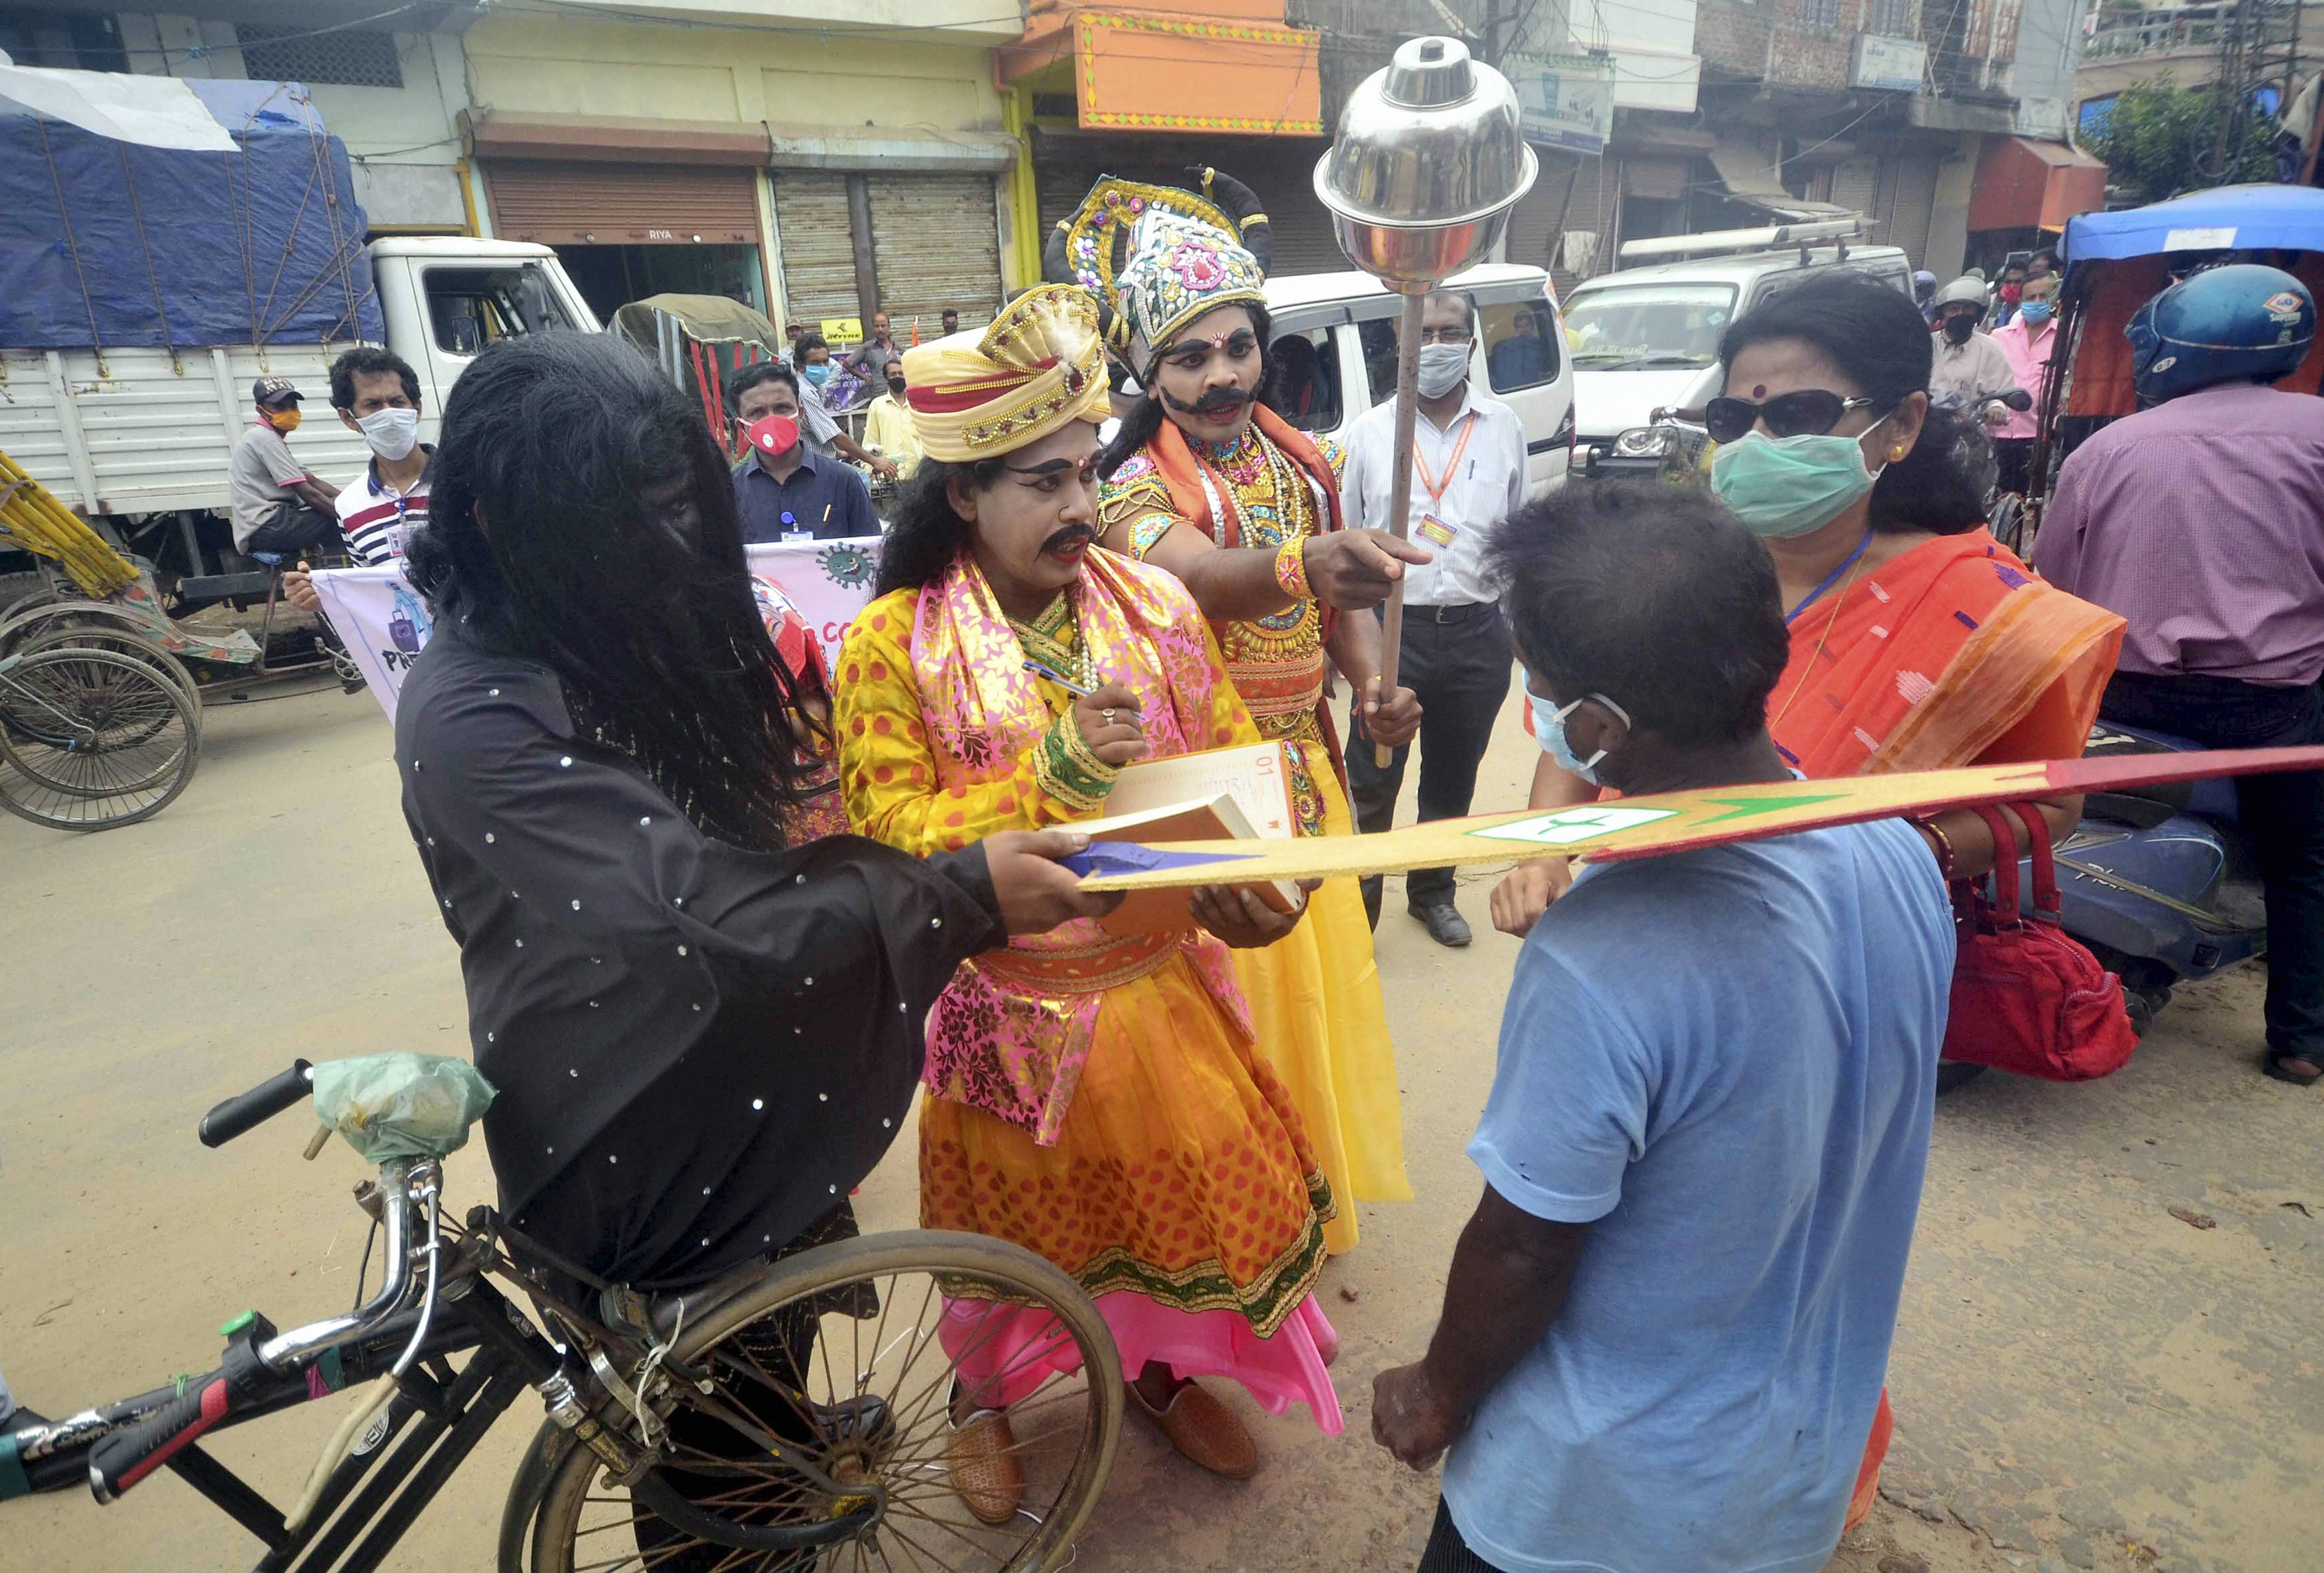 NGO volunteers distribute face masks while making people aware against Covid-19 on a road, in Agartala, May 22, 2020.